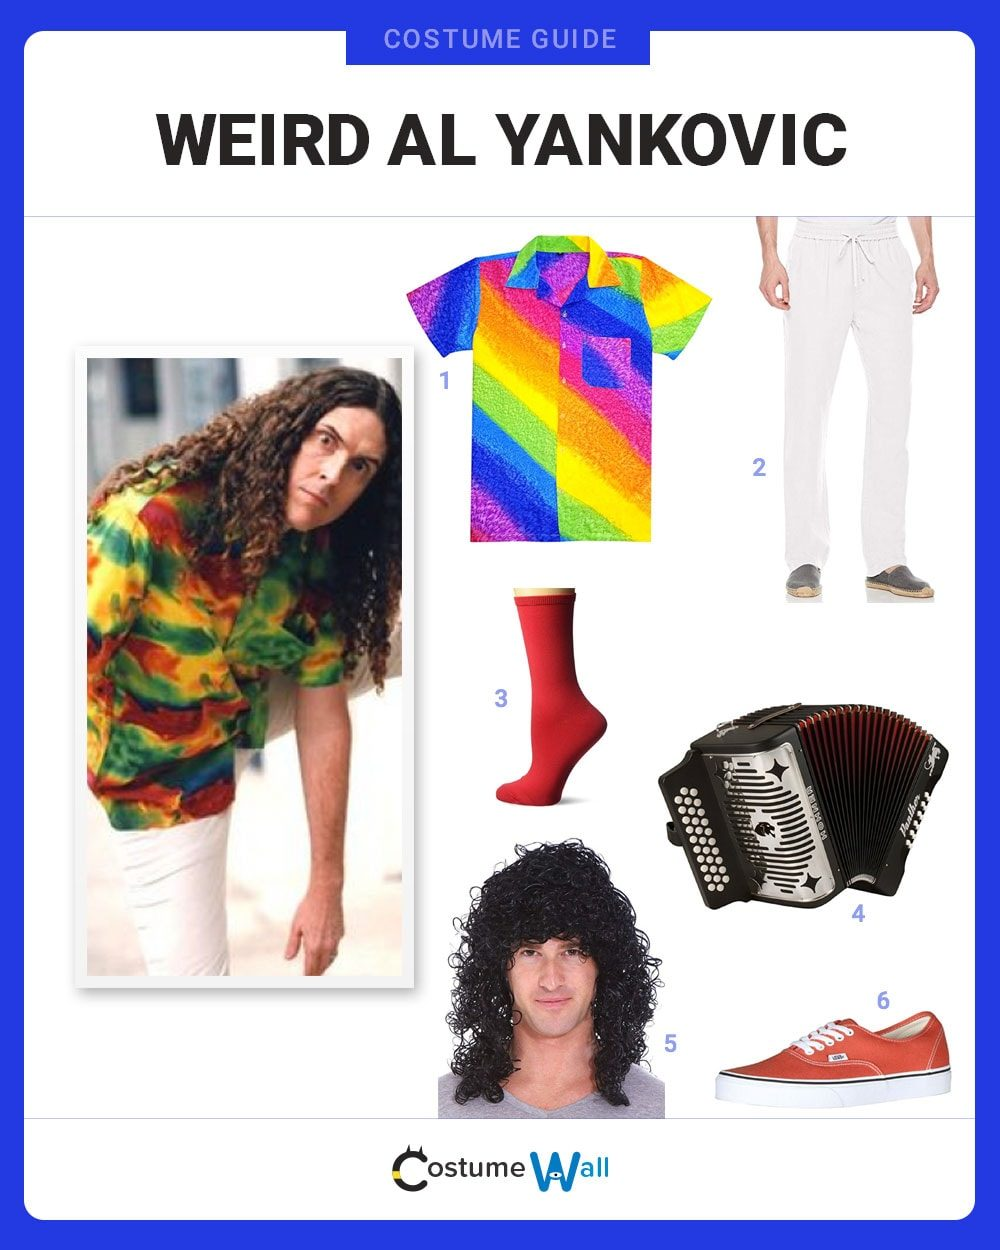 Weird Al Yankovic Costume Guide